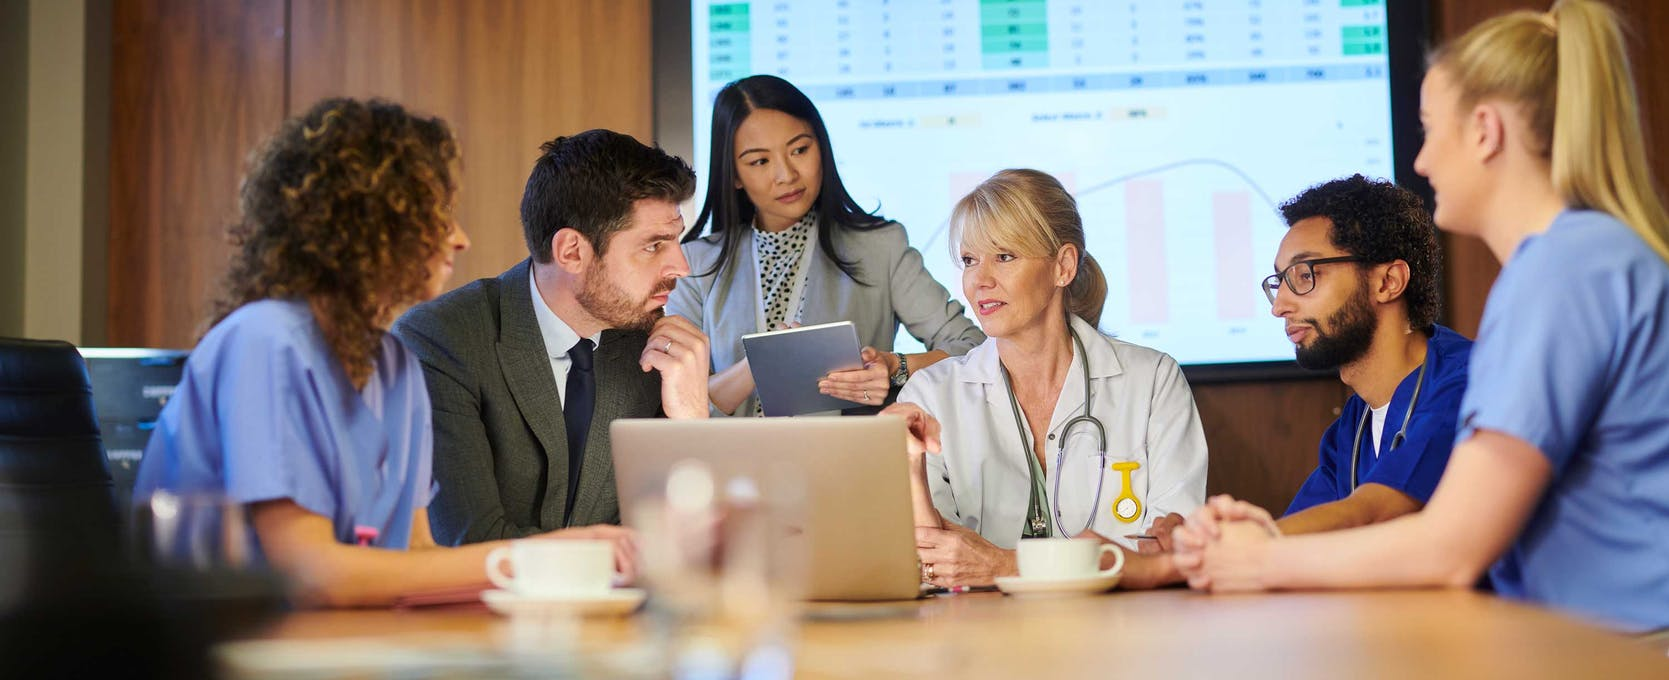 Team of doctors consulting in a conference room